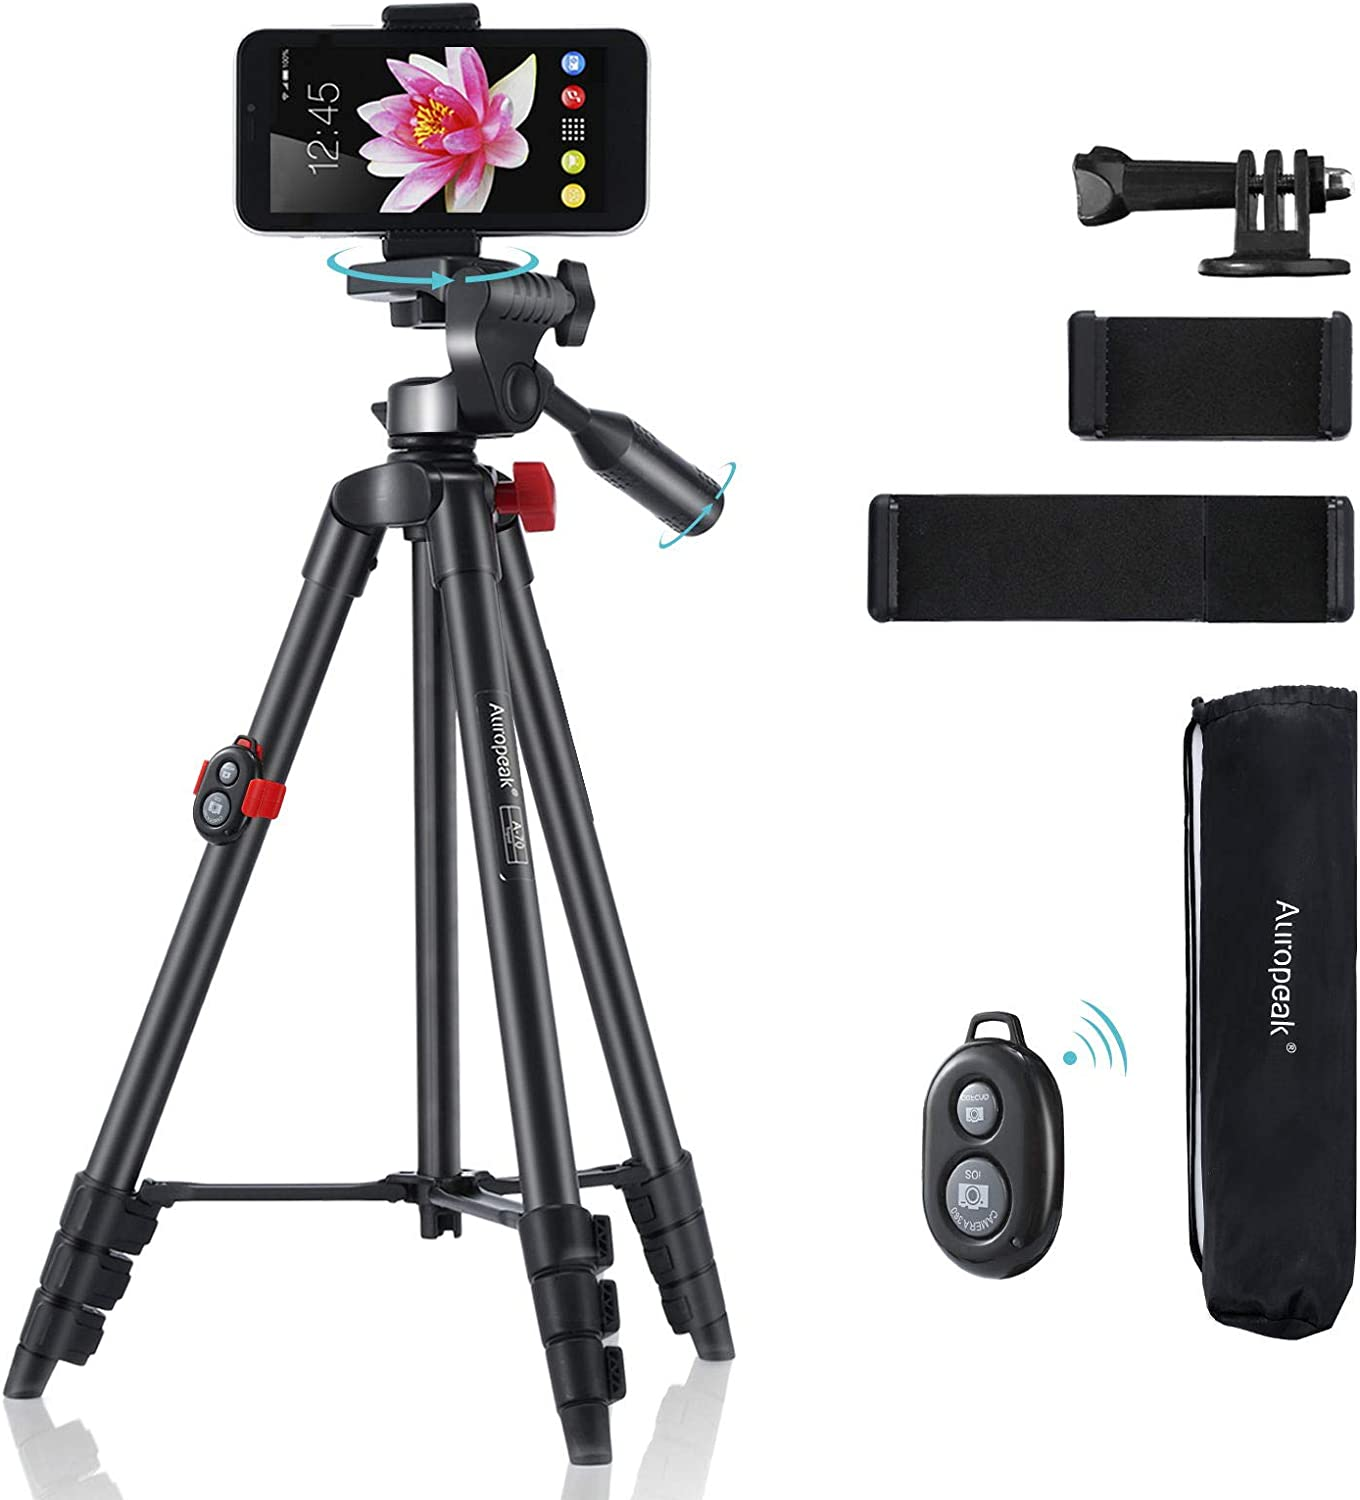 """Phone Tripod,Adjustable Portable 16.4""""-54"""",Cell Phone Tablet Camera Tripod Stand with Carry Bag,Remote Shutter Compatible,3 Phone Universal Holders for Smartphone,Live Streaming,Gopro,Ipad,Aluminum"""